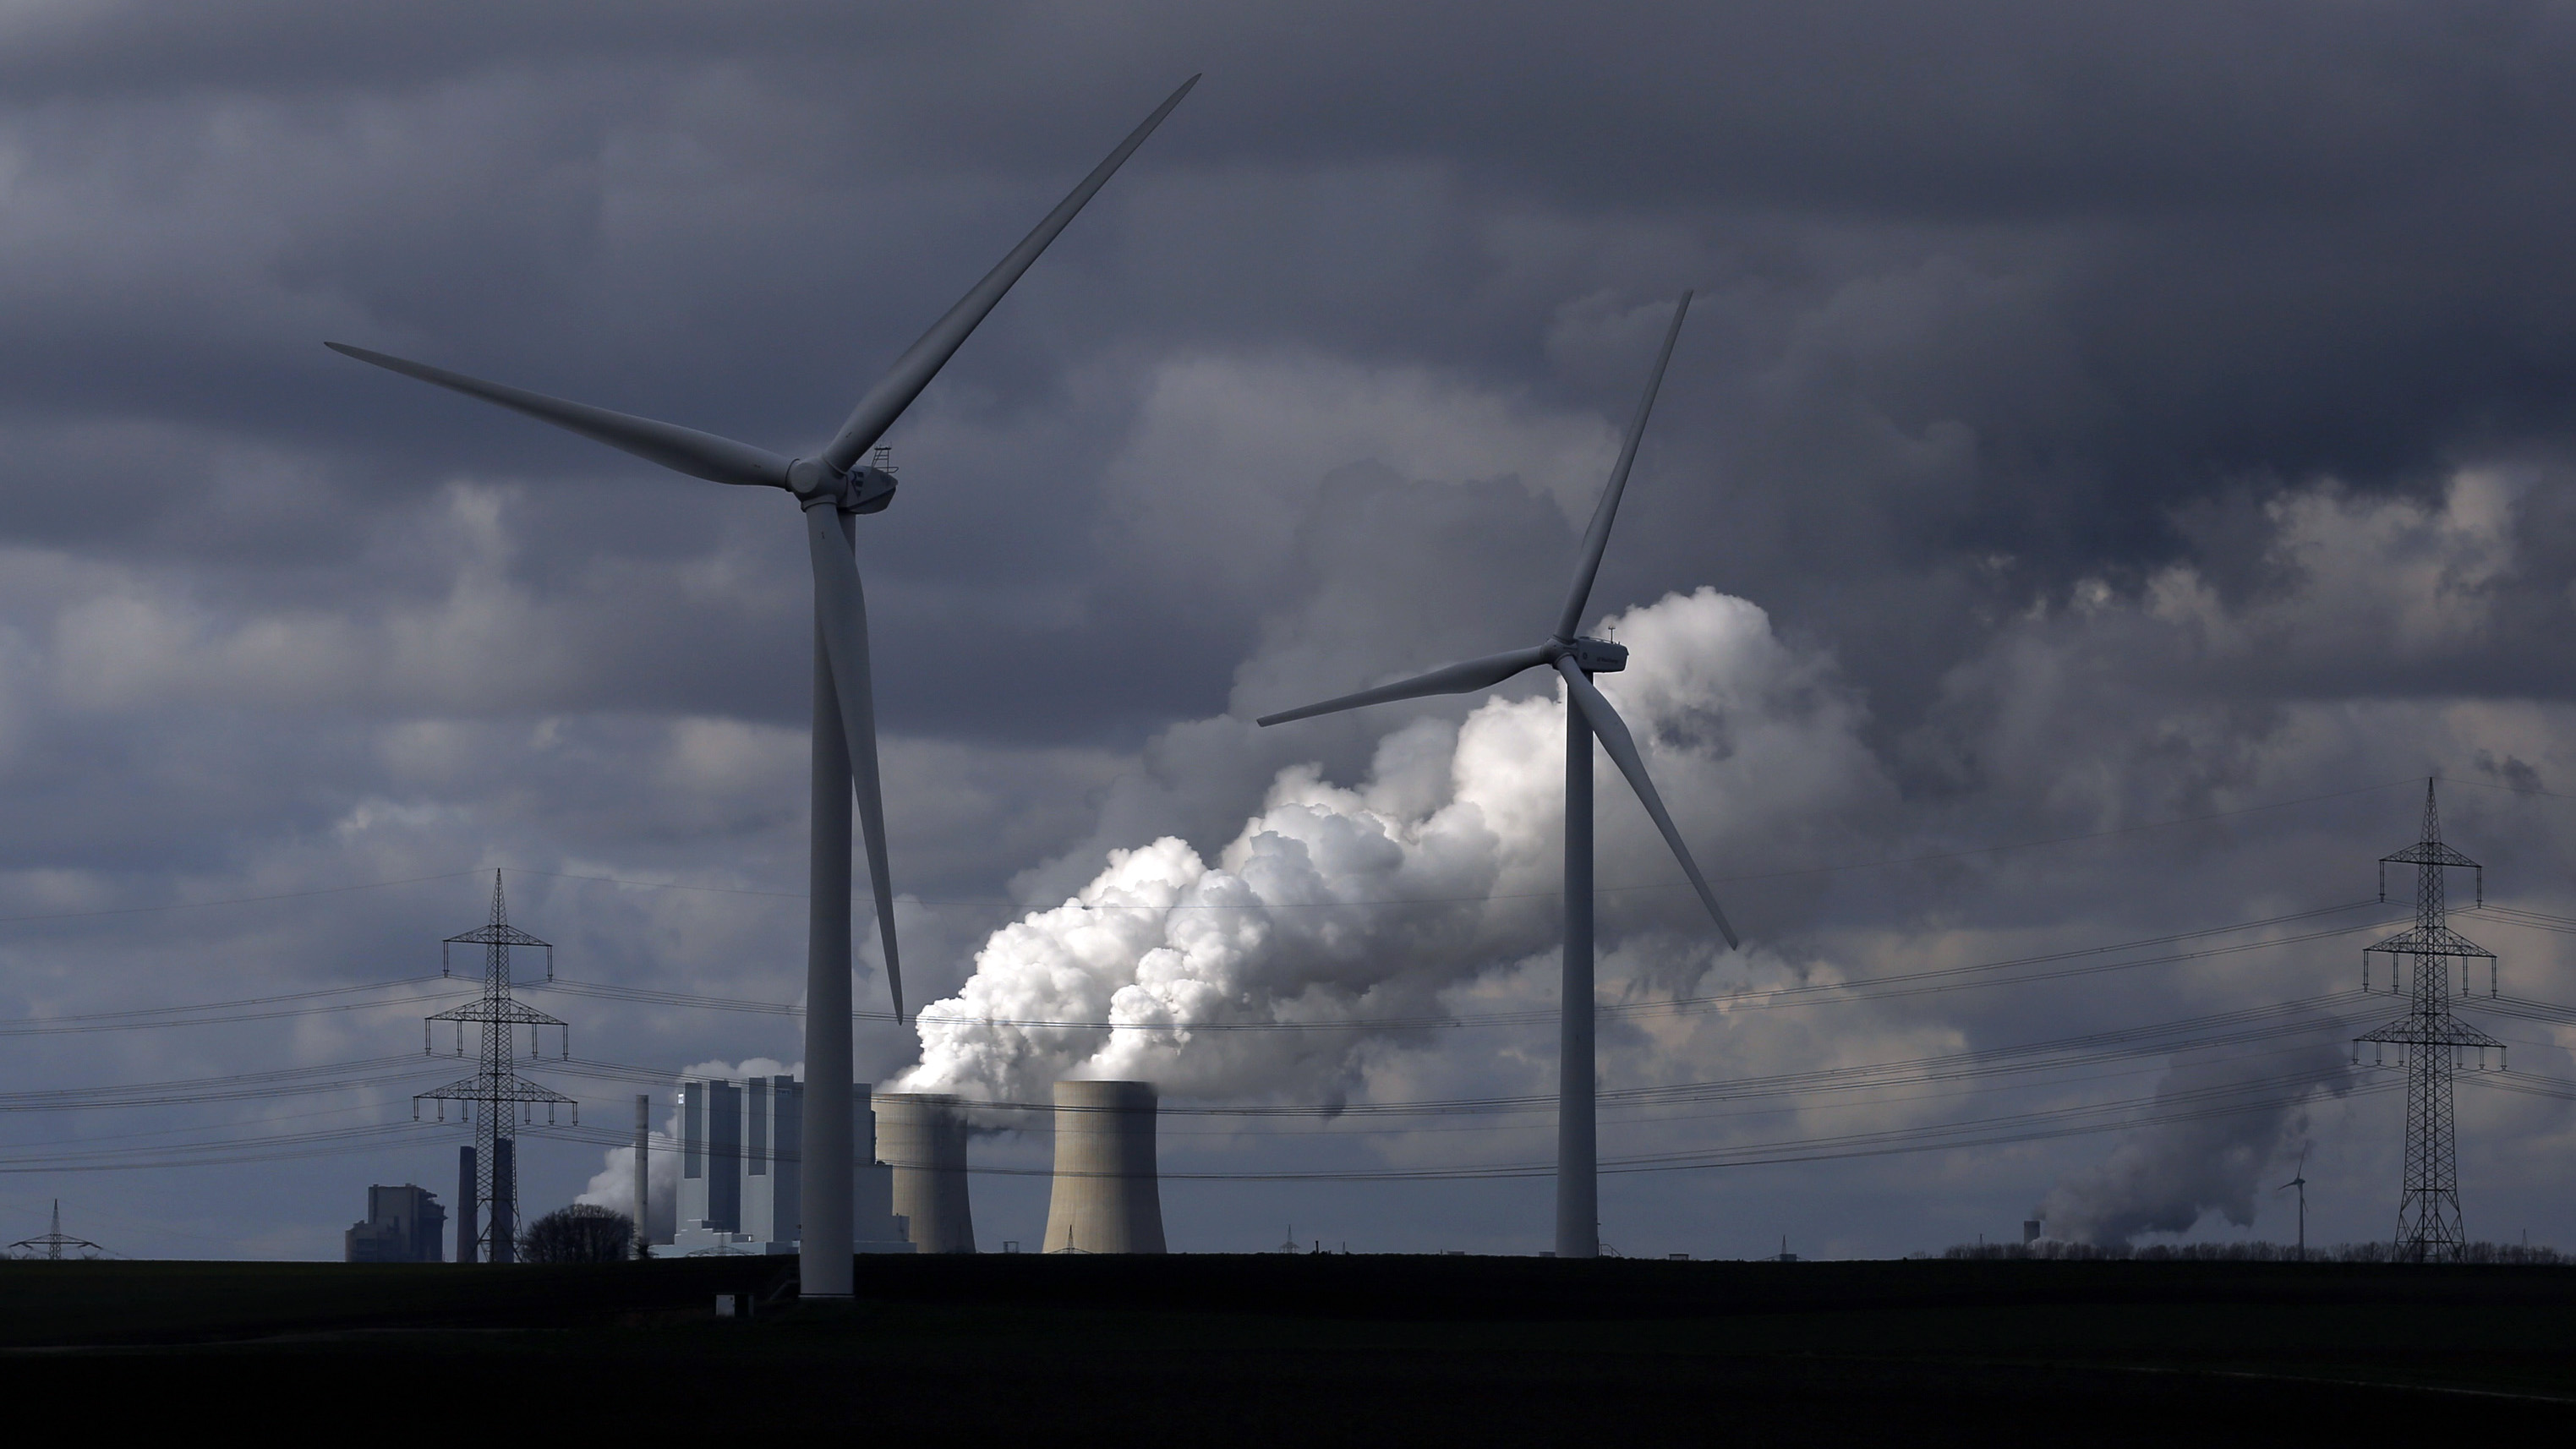 Wind turbines are seen in front of a coal power plant of German utility RWE Power near the western town of Neurath February 28, 2014. Germany's No.2 utility RWE posted a steep net loss for 2013, due to 4.8 billion euros ($6.6 billion) in writedowns mainly on its ailing power plants, which have come under pressure from a massive rise in renewable energy capacity in its home market. Picture taken on February 28. REUTERS/Ina Fassbender  (GERMANY - Tags: BUSINESS ENERGY EMPLOYMENT) - RTR3G0H9